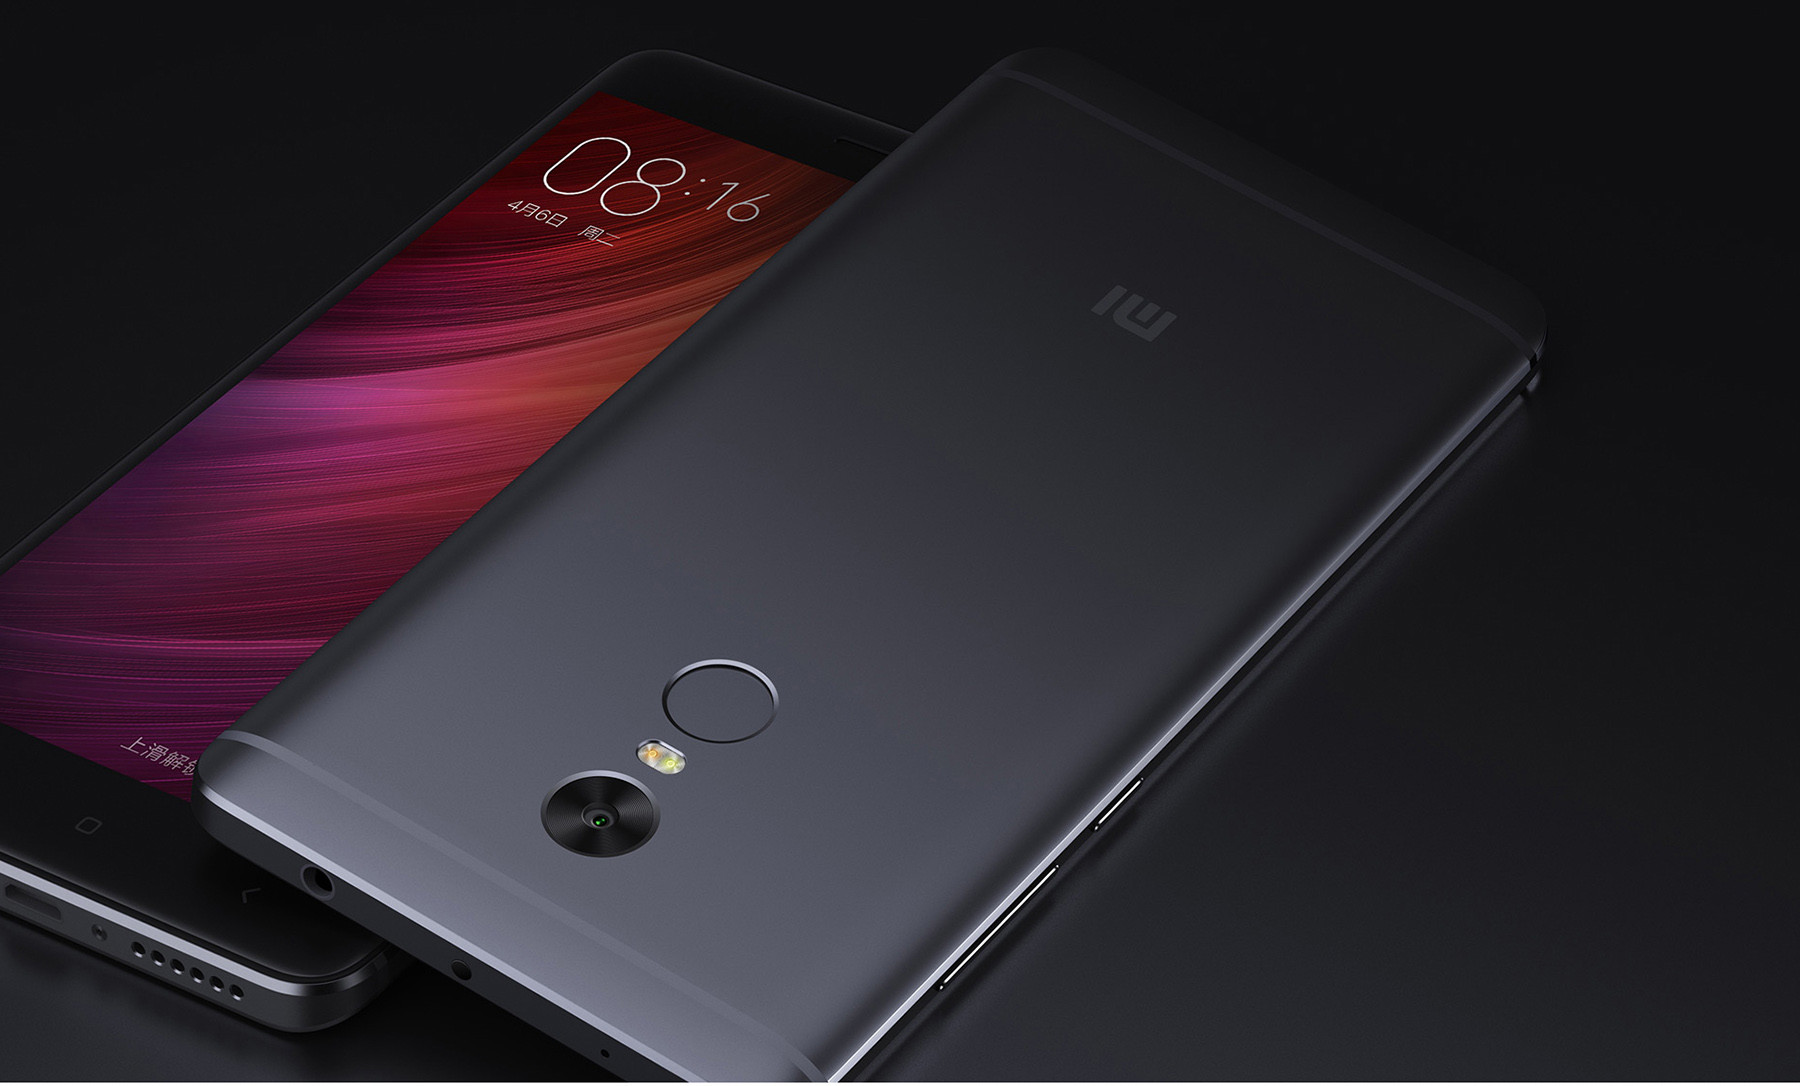 Xiaomi: Redmi Note 5 will not release, replaced with Redmi 5 Plus